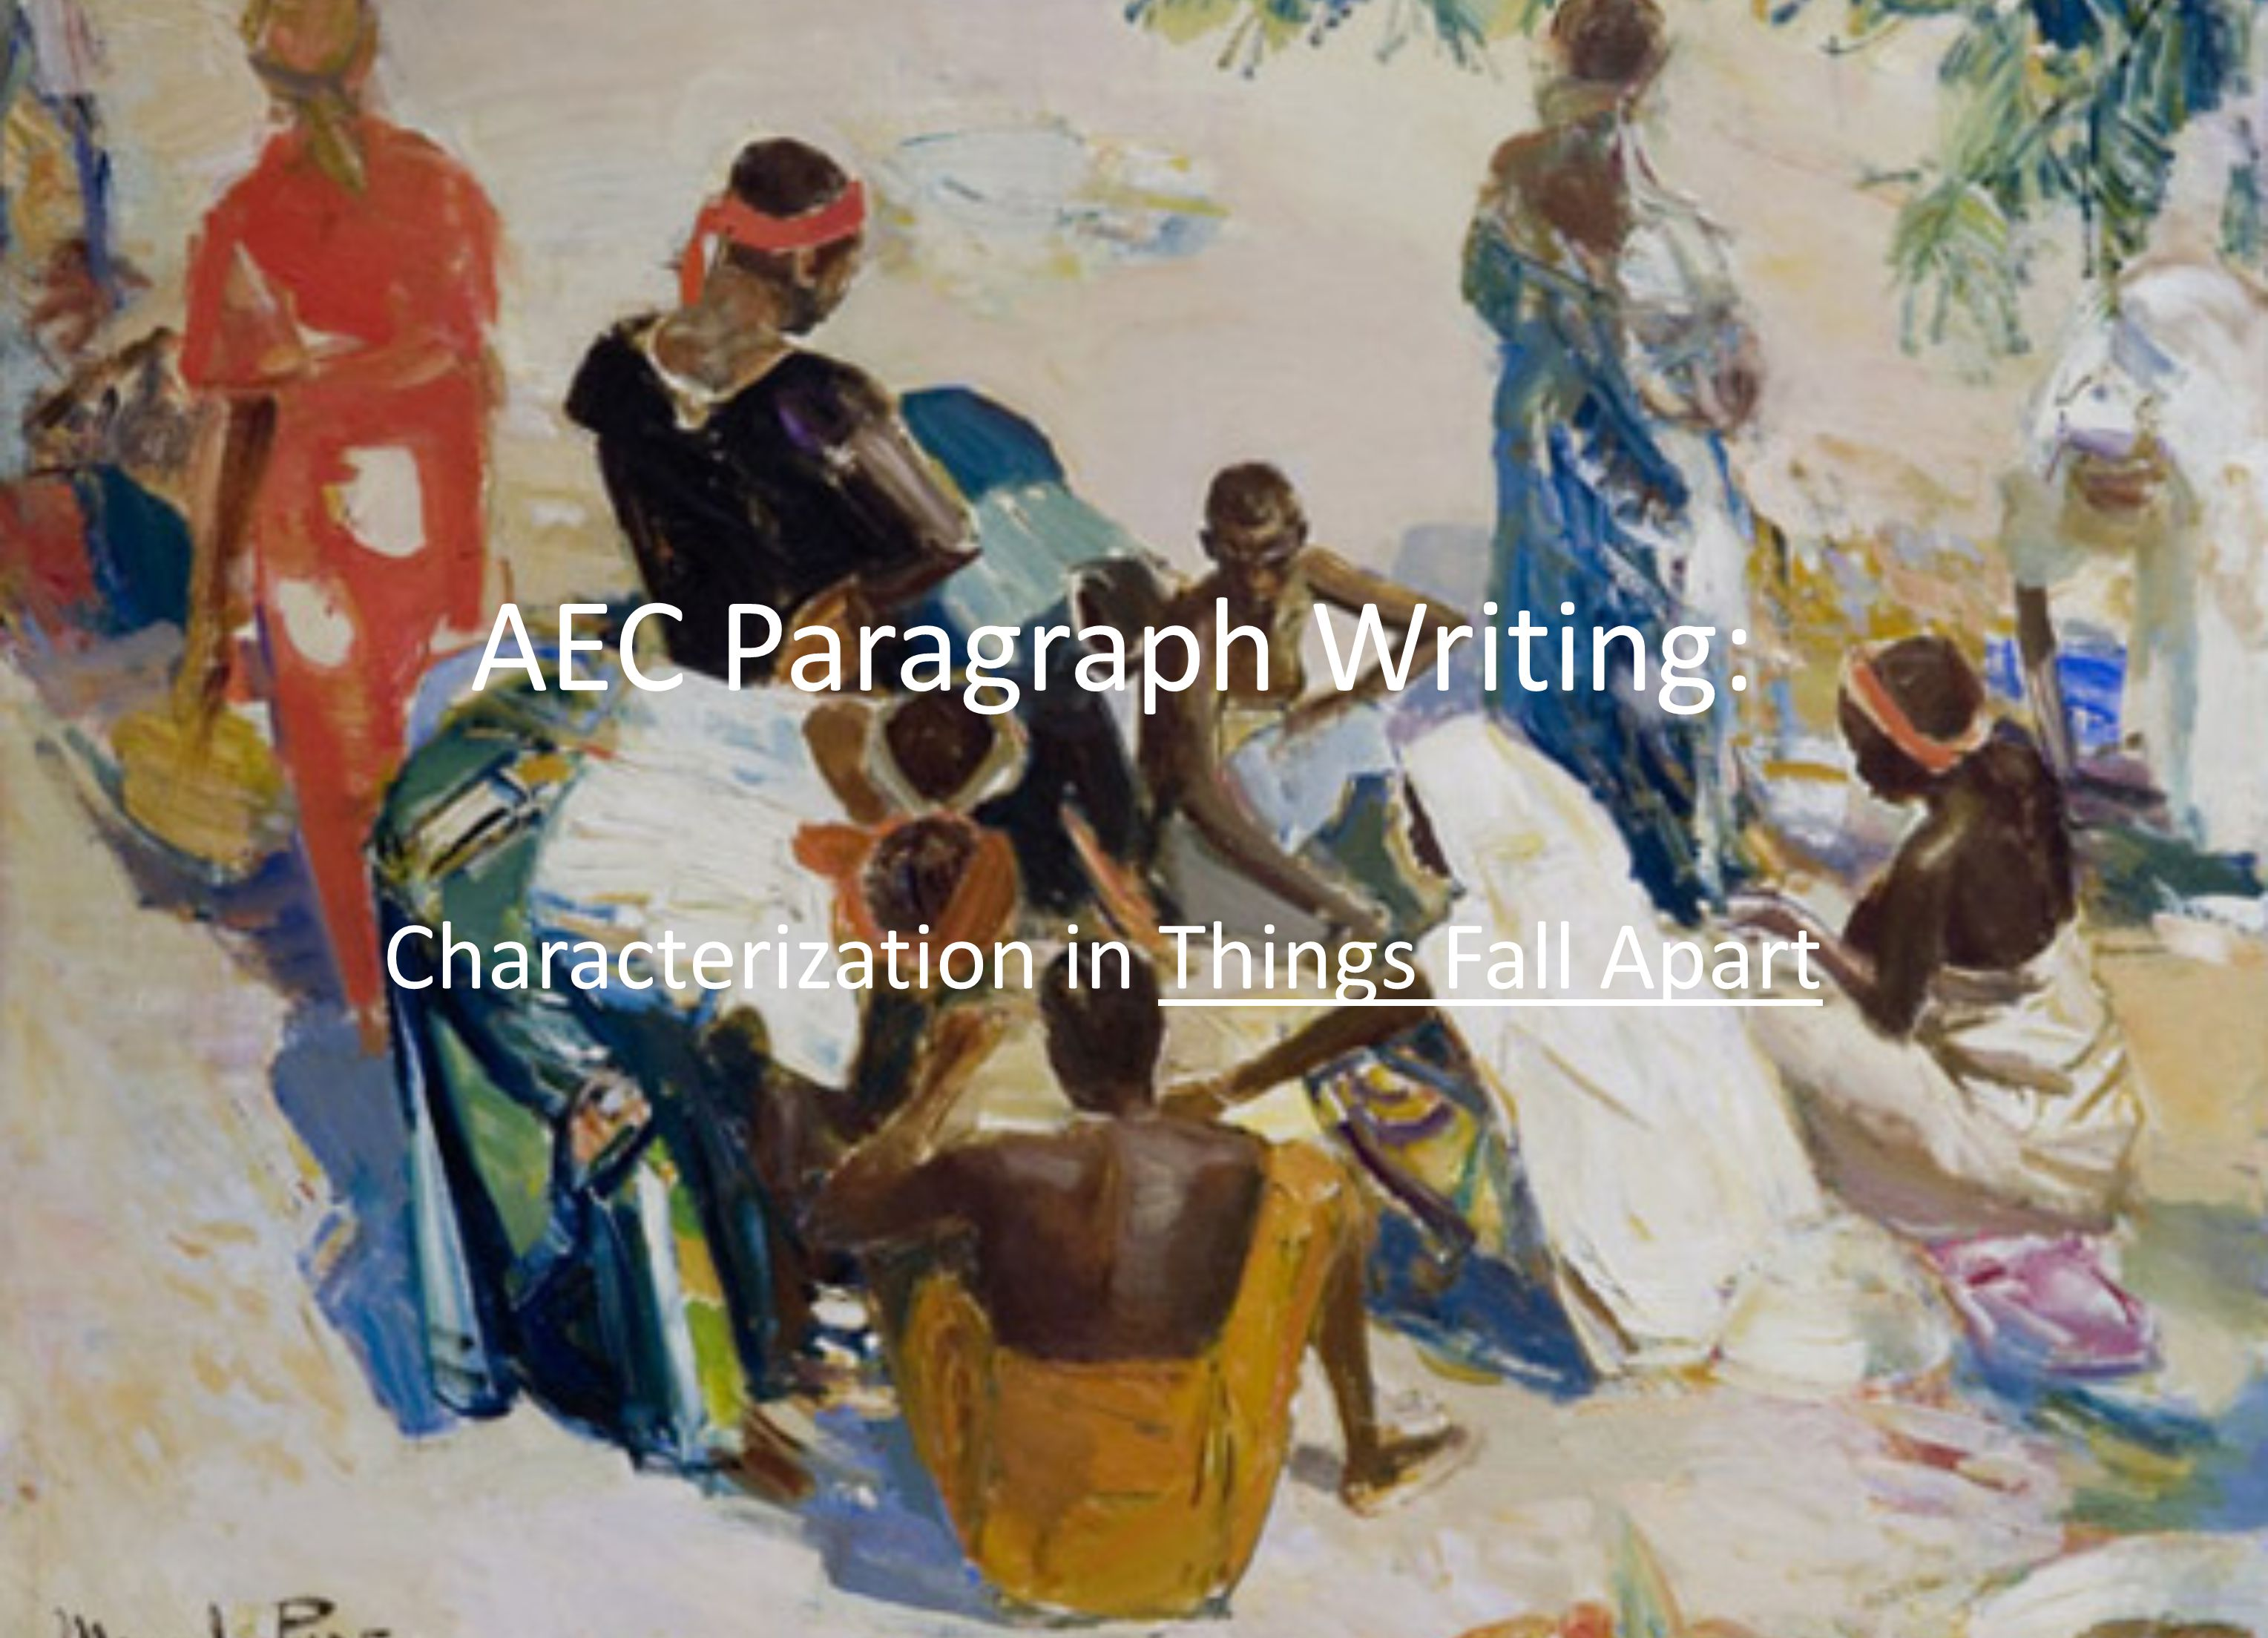 AEC Paragraph Writing: Characterization in Things Fall Apart